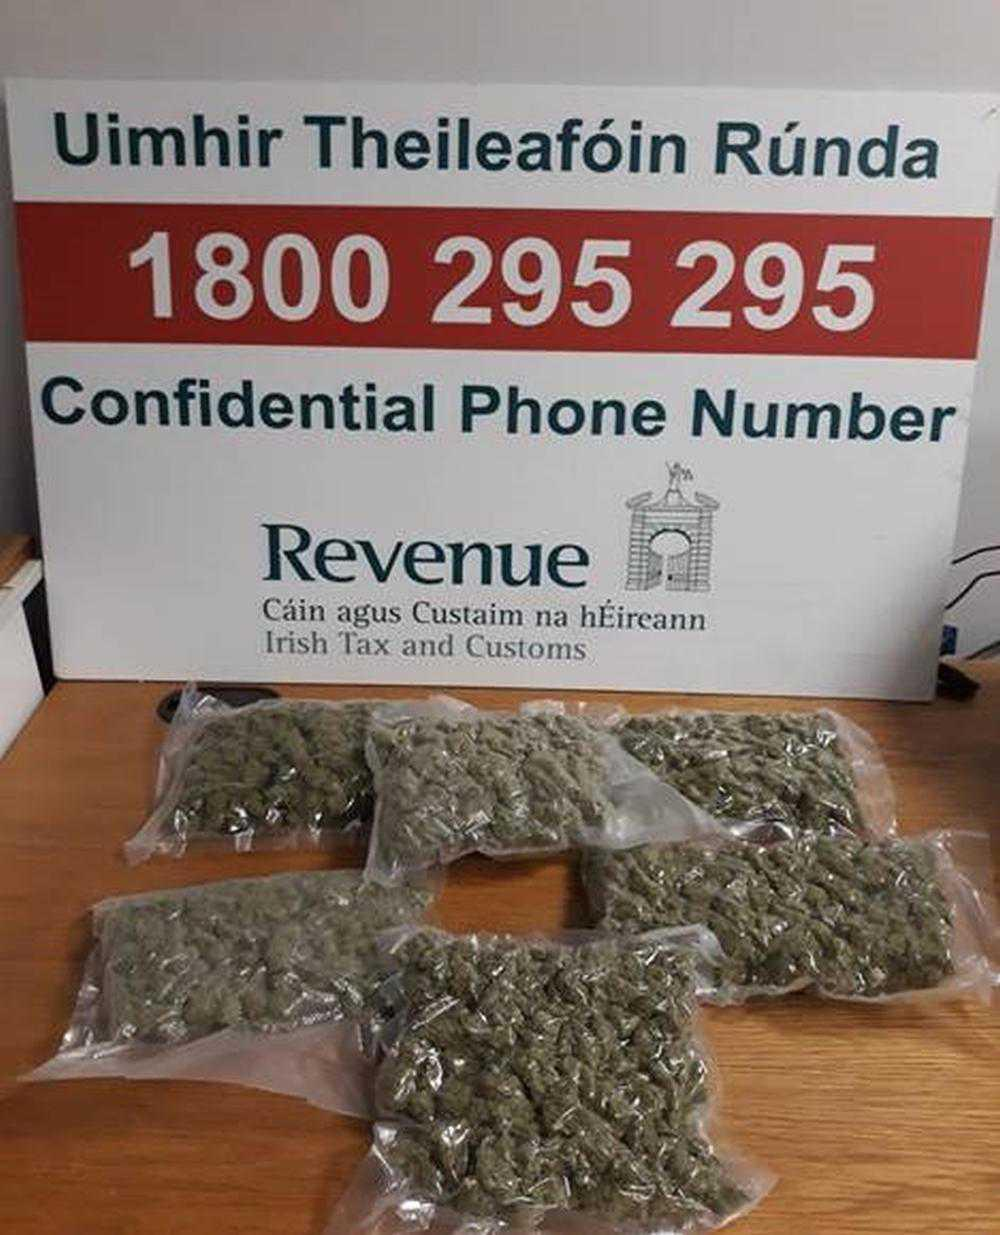 Drugs worth €22,000 concealed in crisp bags seized at Shannon airport